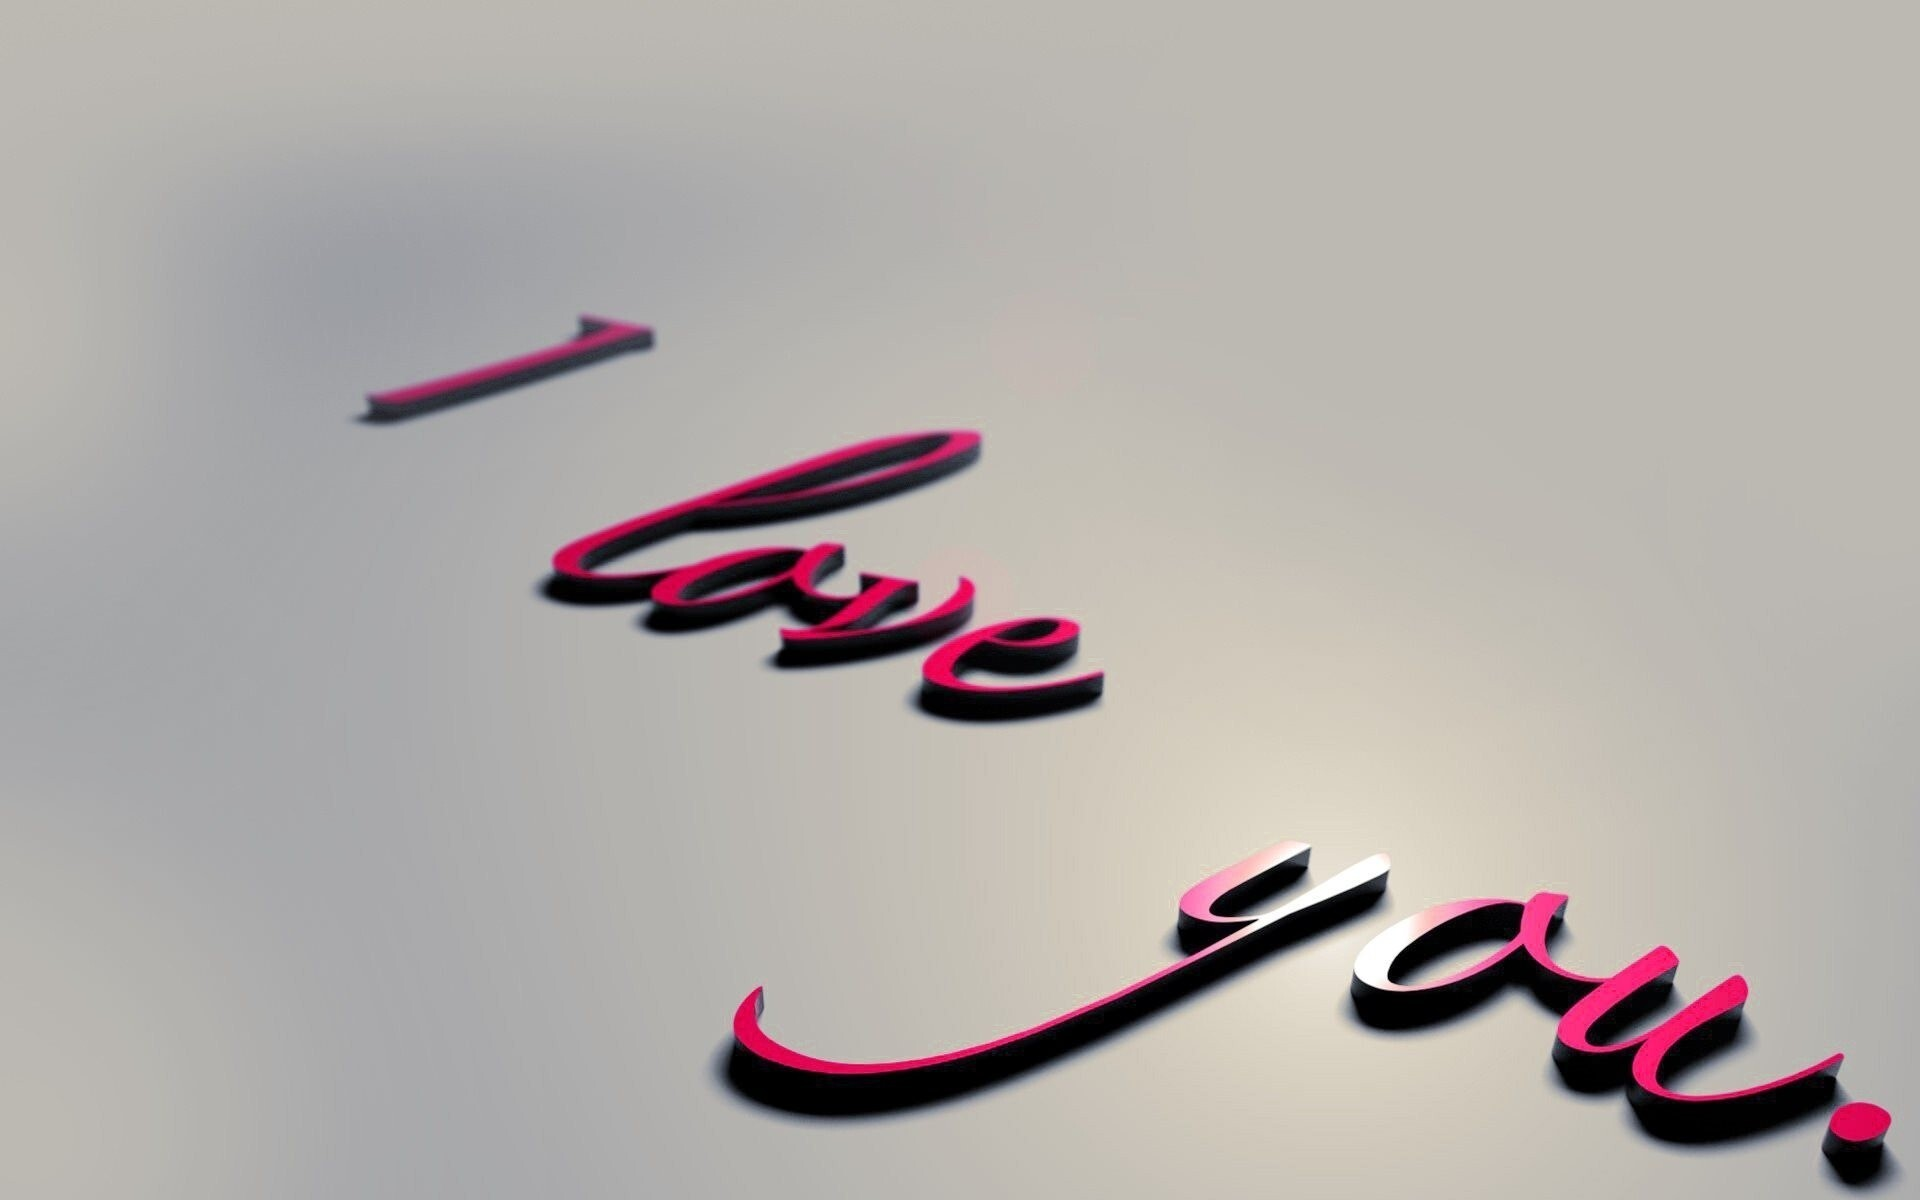 Wallpaper Hd 3d I Love You : I Love You Desktop HD Background Wallpapers HD Wallpapers